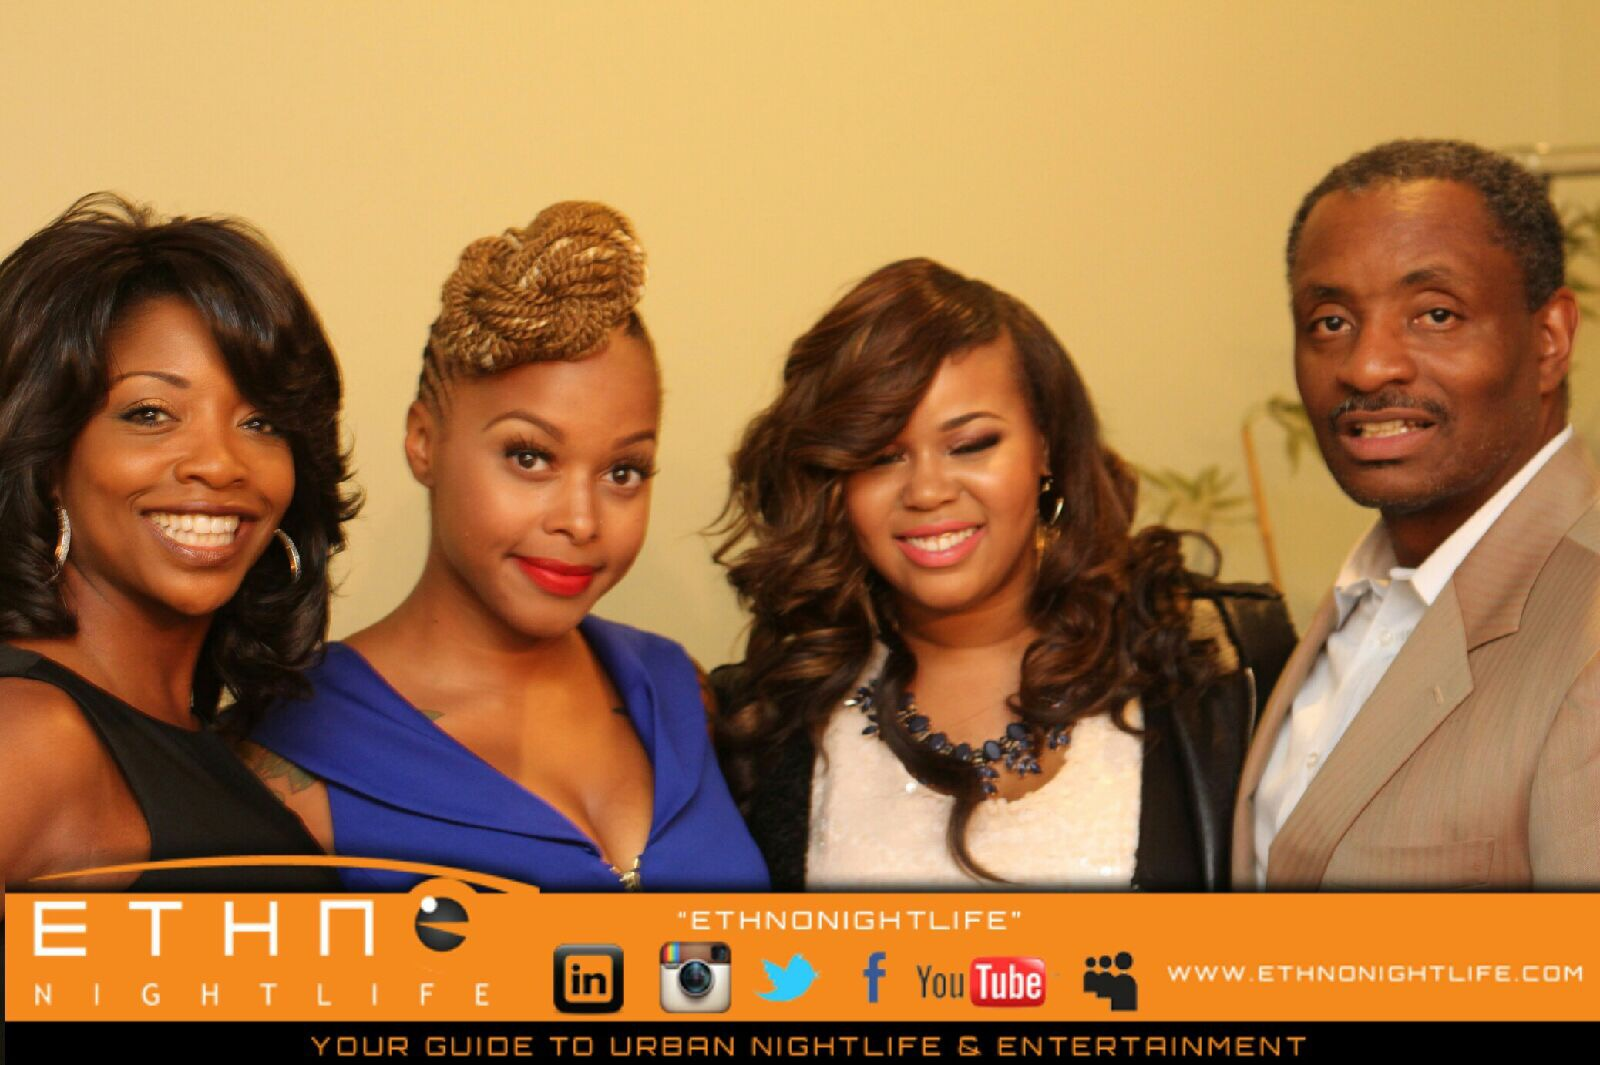 Tony with Brianna and Chrisette Michelle